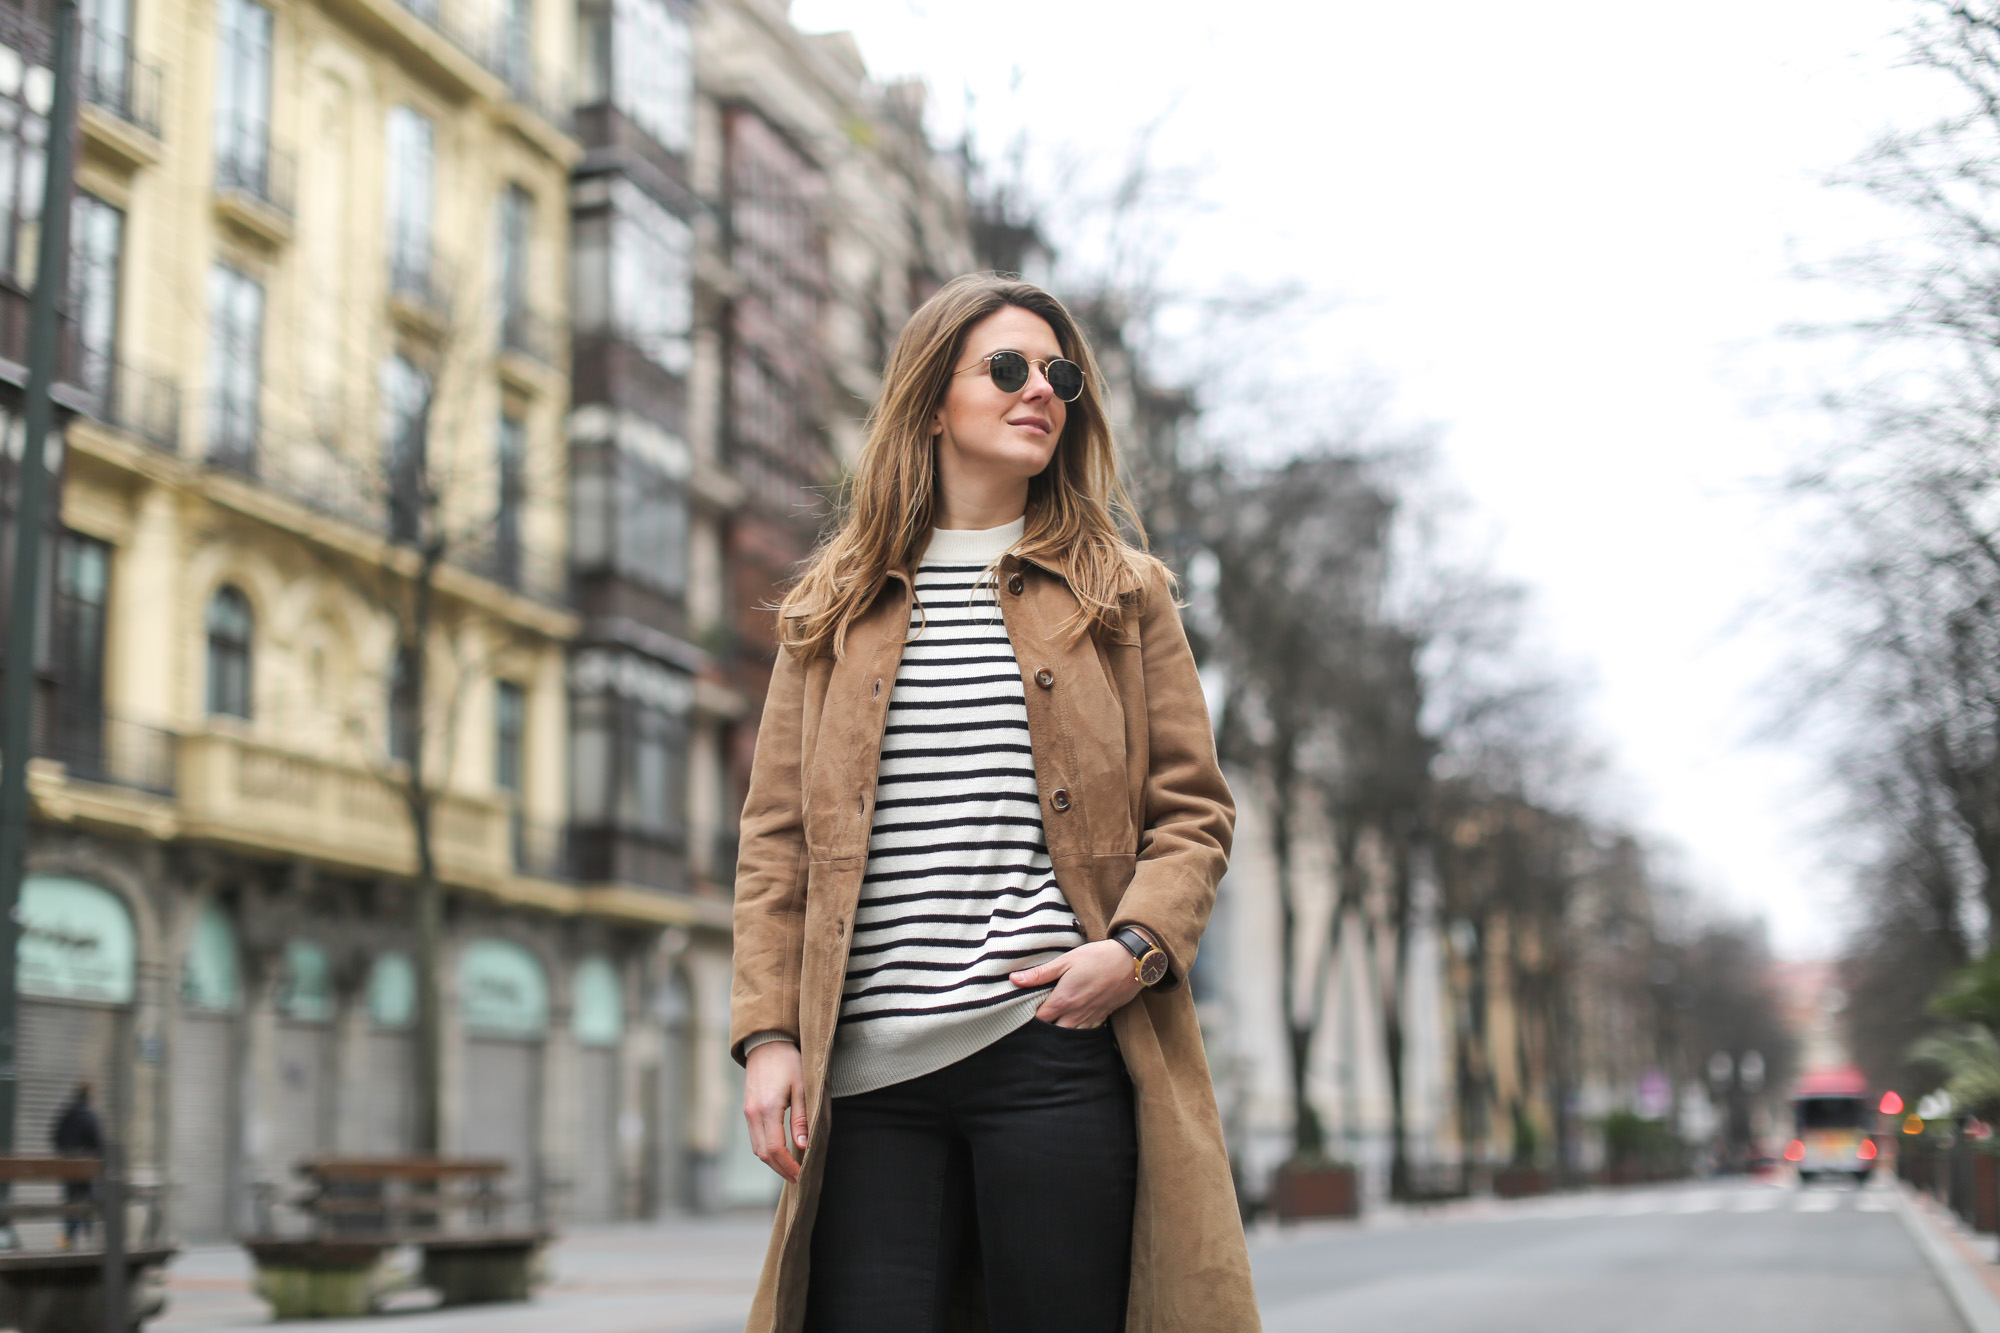 Clochet-streetstyle-black-flared-jeans-suede-vintage-coat-finery-london-bag-8